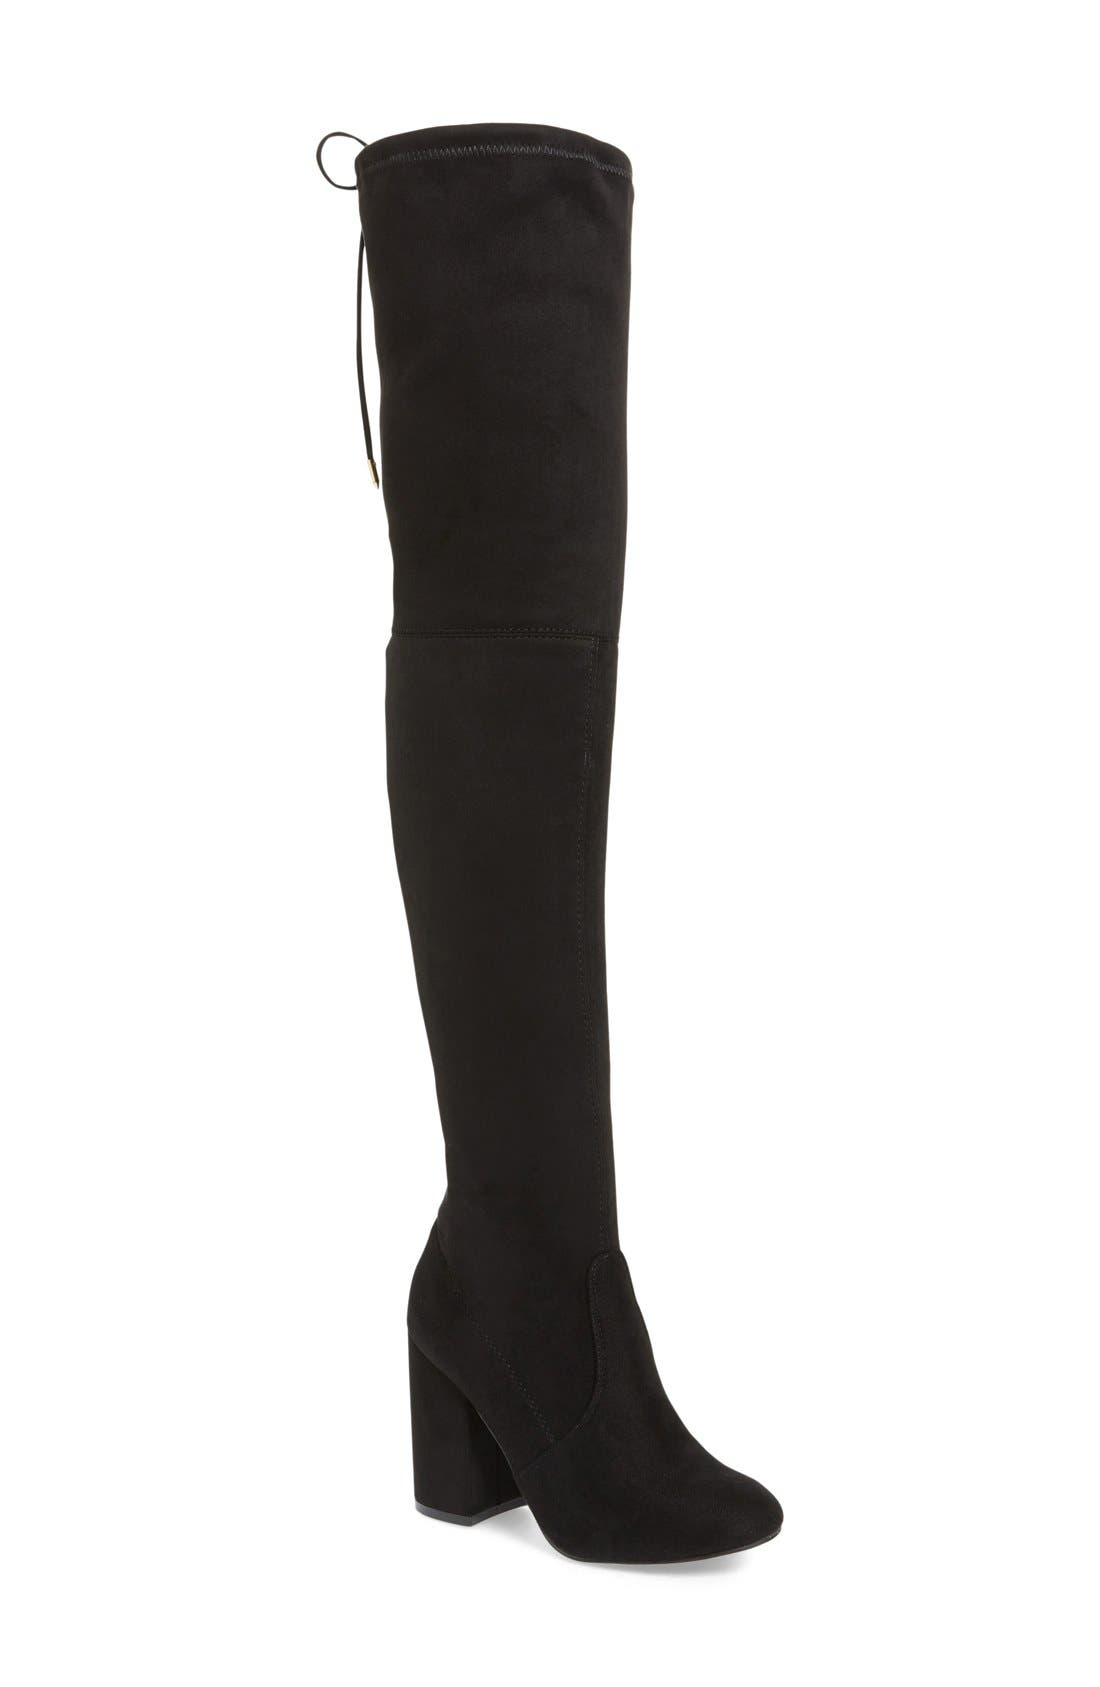 Norri Over the Knee Boot,                         Main,                         color, 019